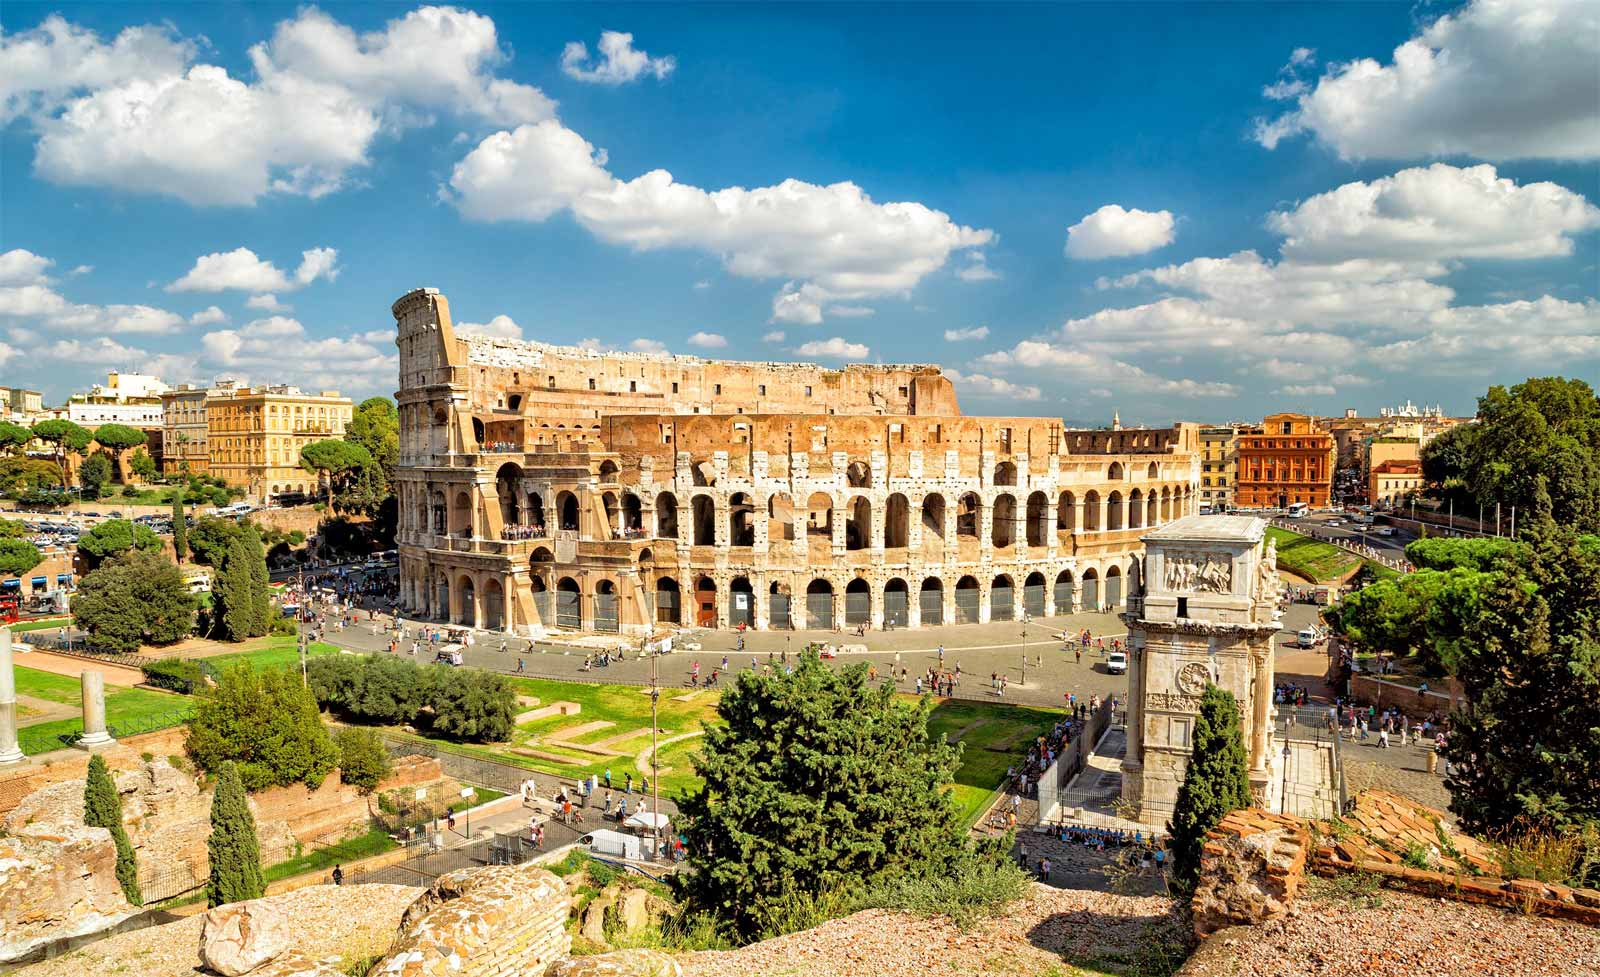 The Best of Rome in a Day - Colosseum Walking Tour around the Roman Forum and Campidoglio